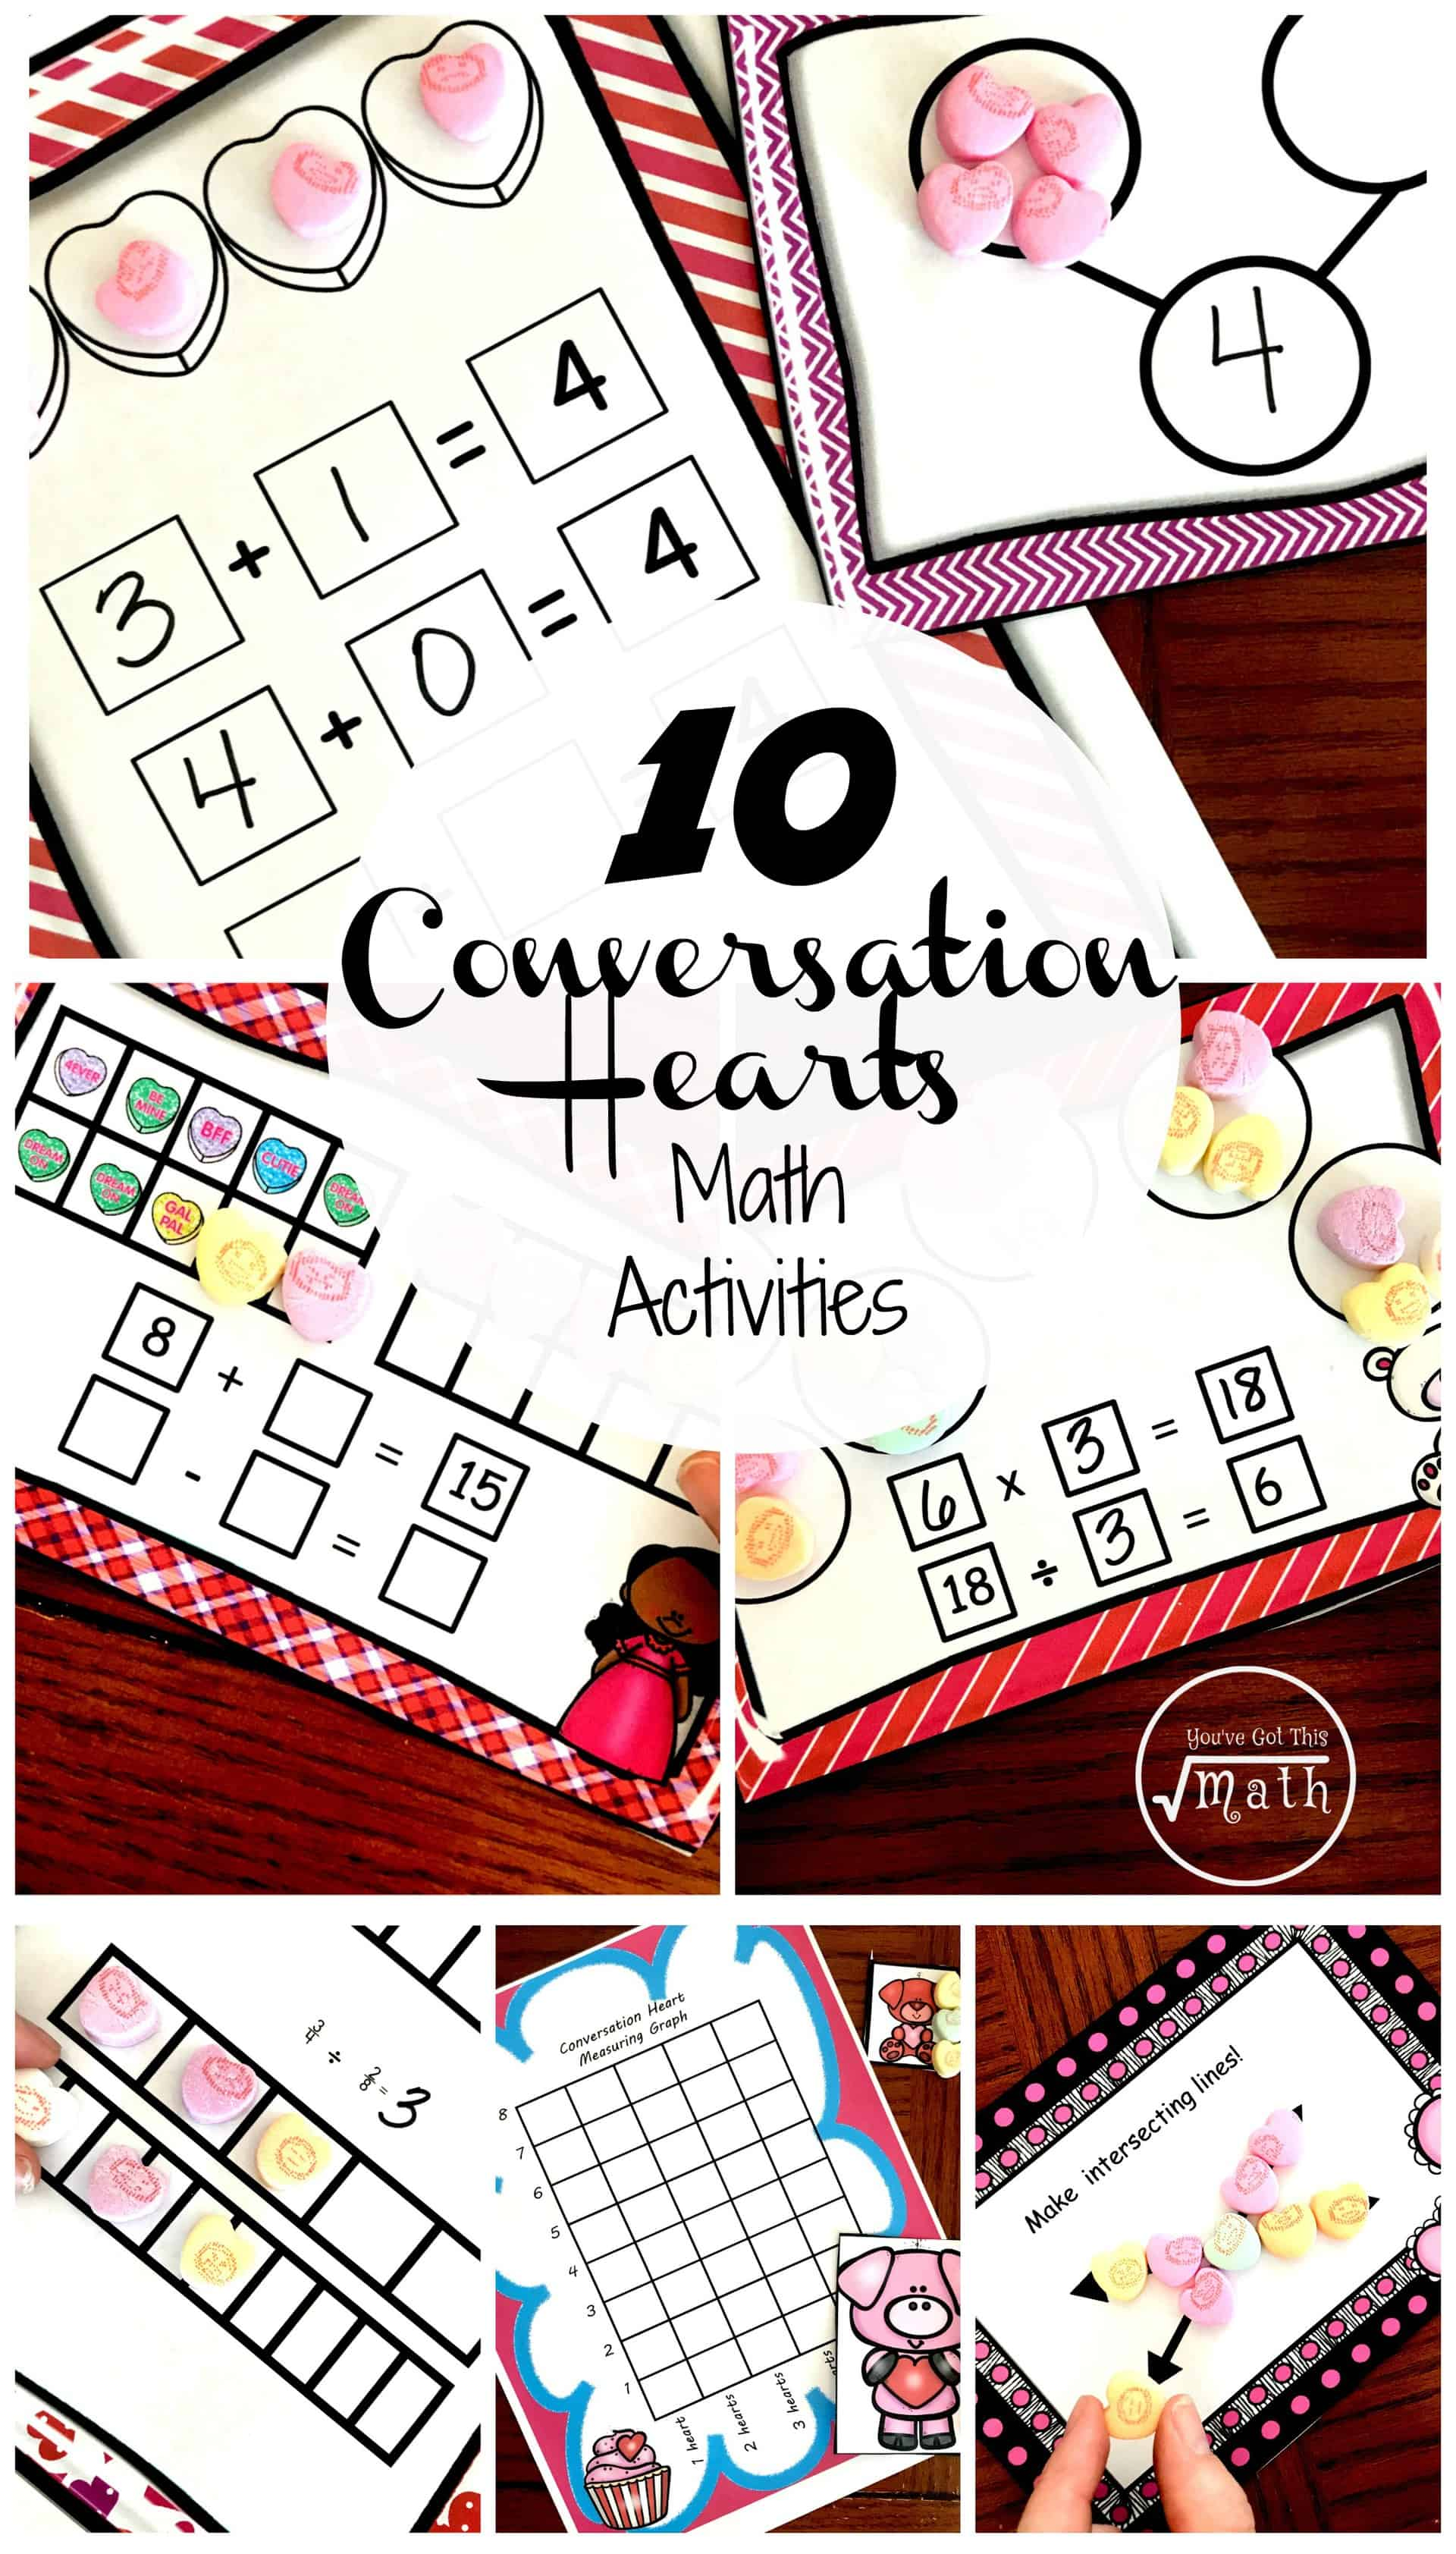 10 Valentine Math Activities Using Conversation Hearts For K Through 5th  Graders